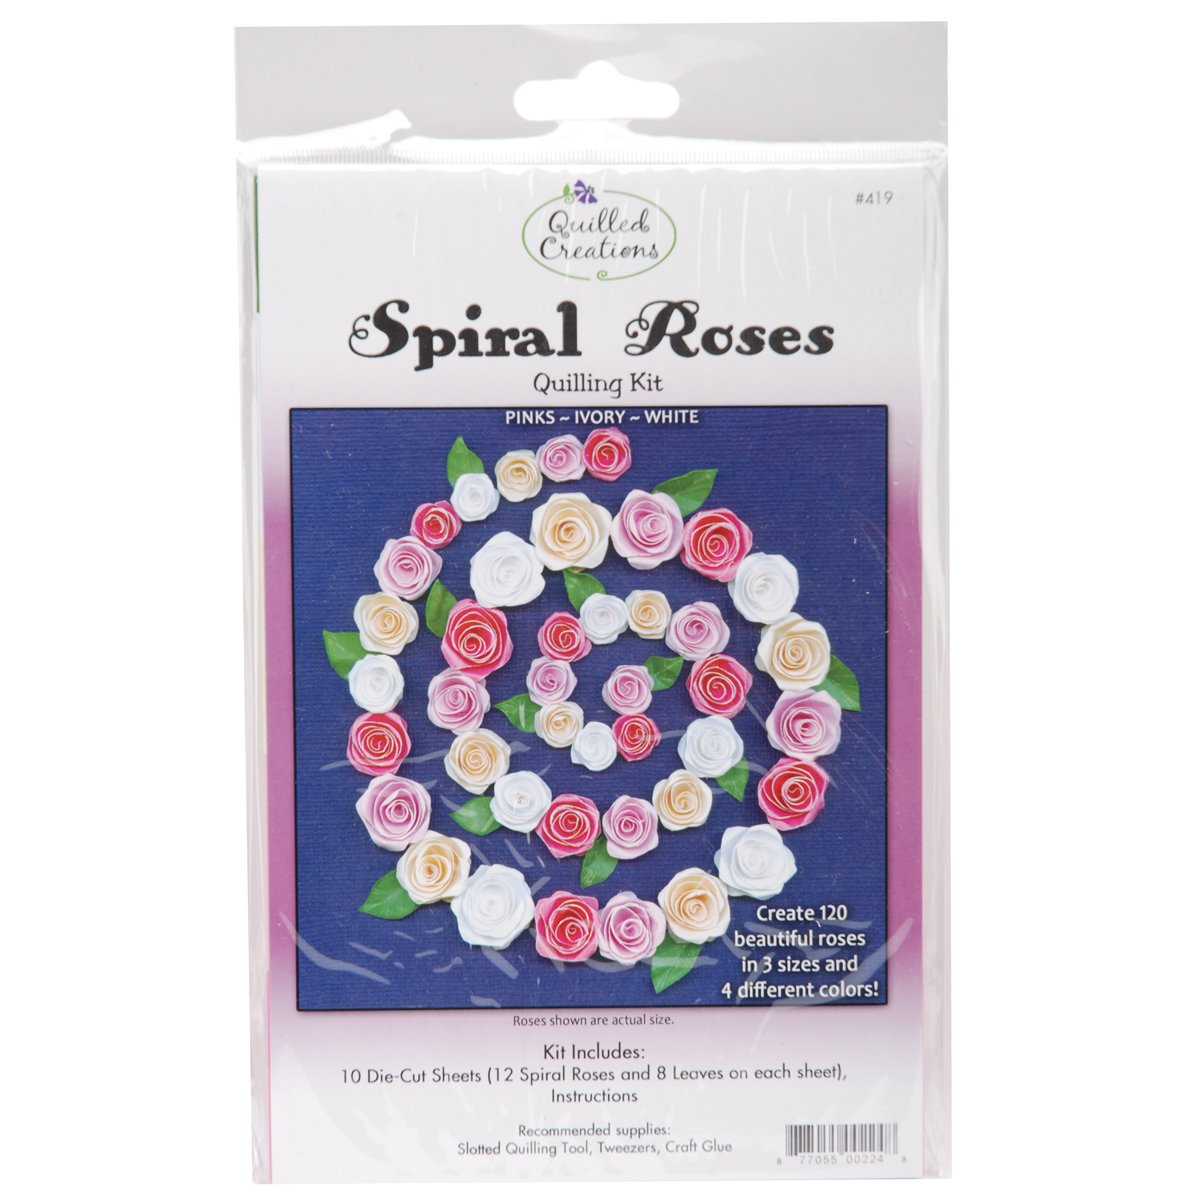 Quilling Kit, Spiral Roses Notions - In Network Q419